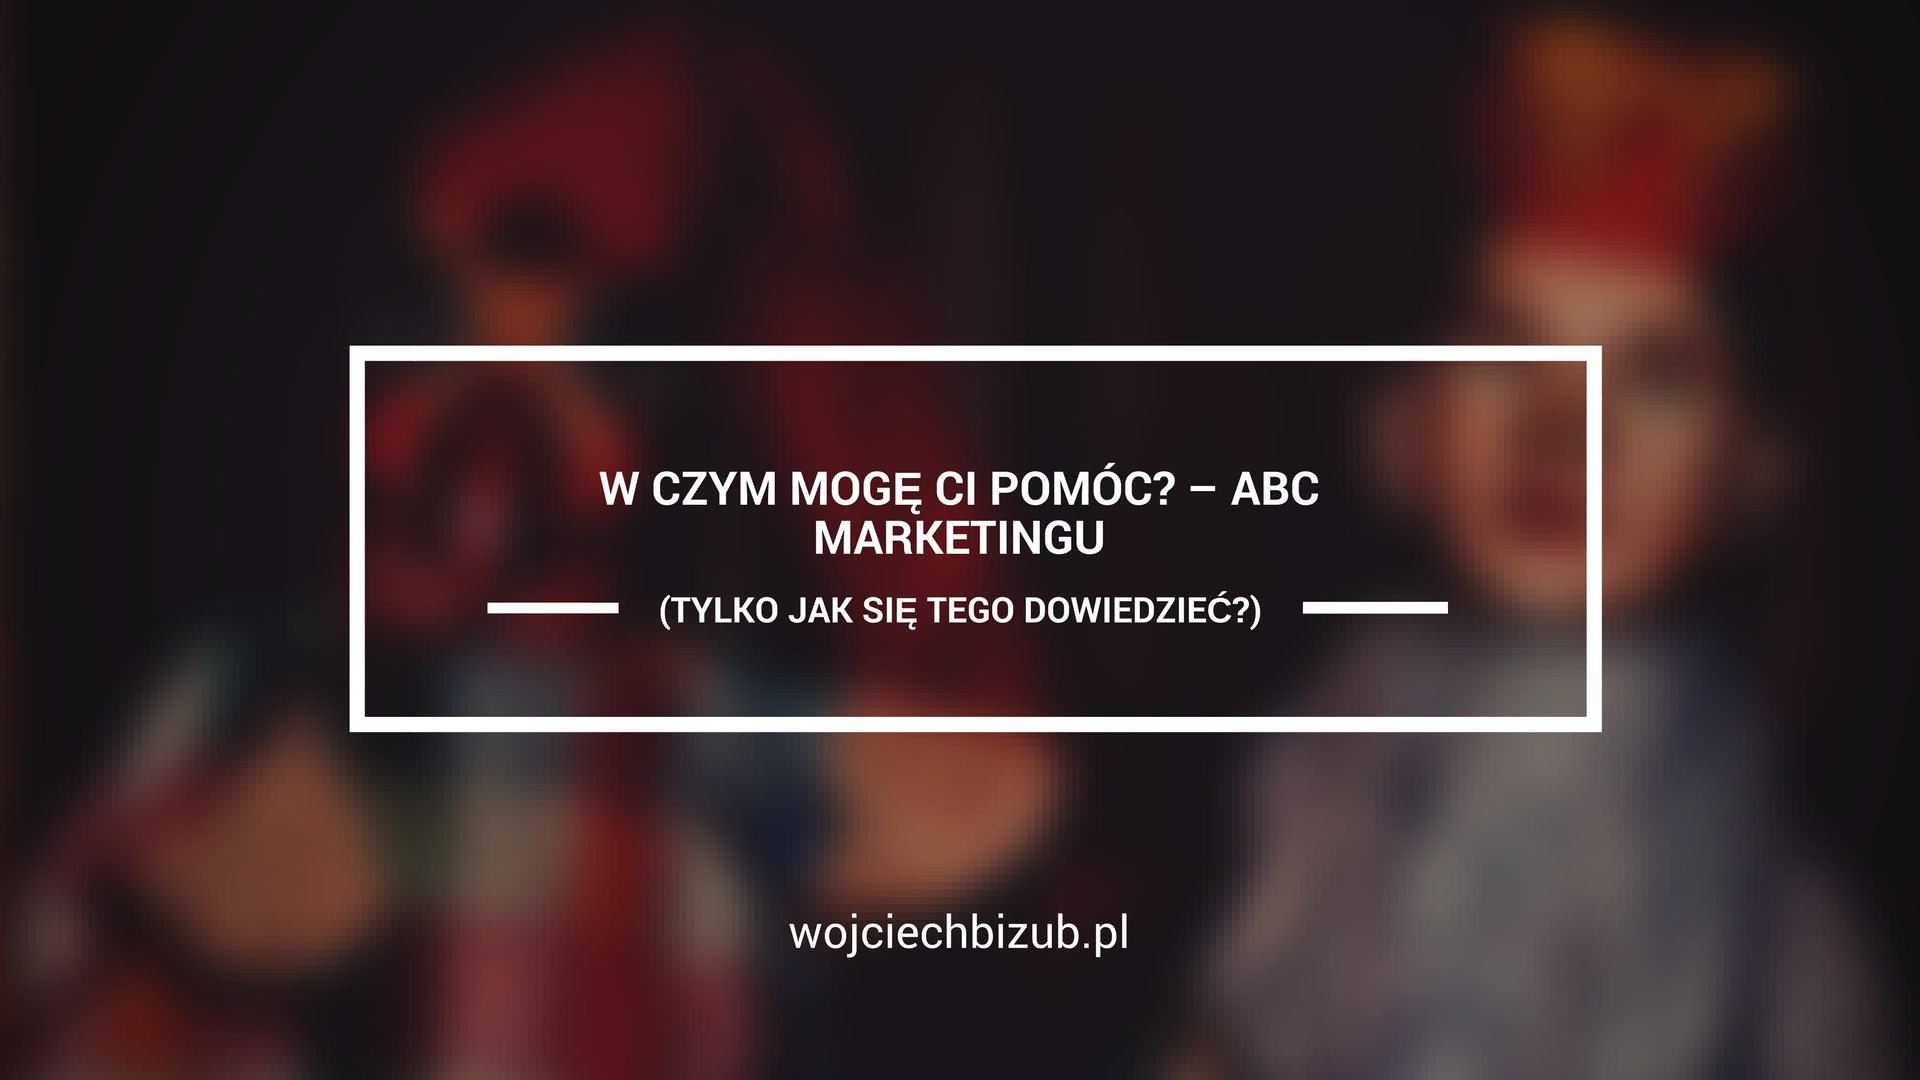 abc marketingu